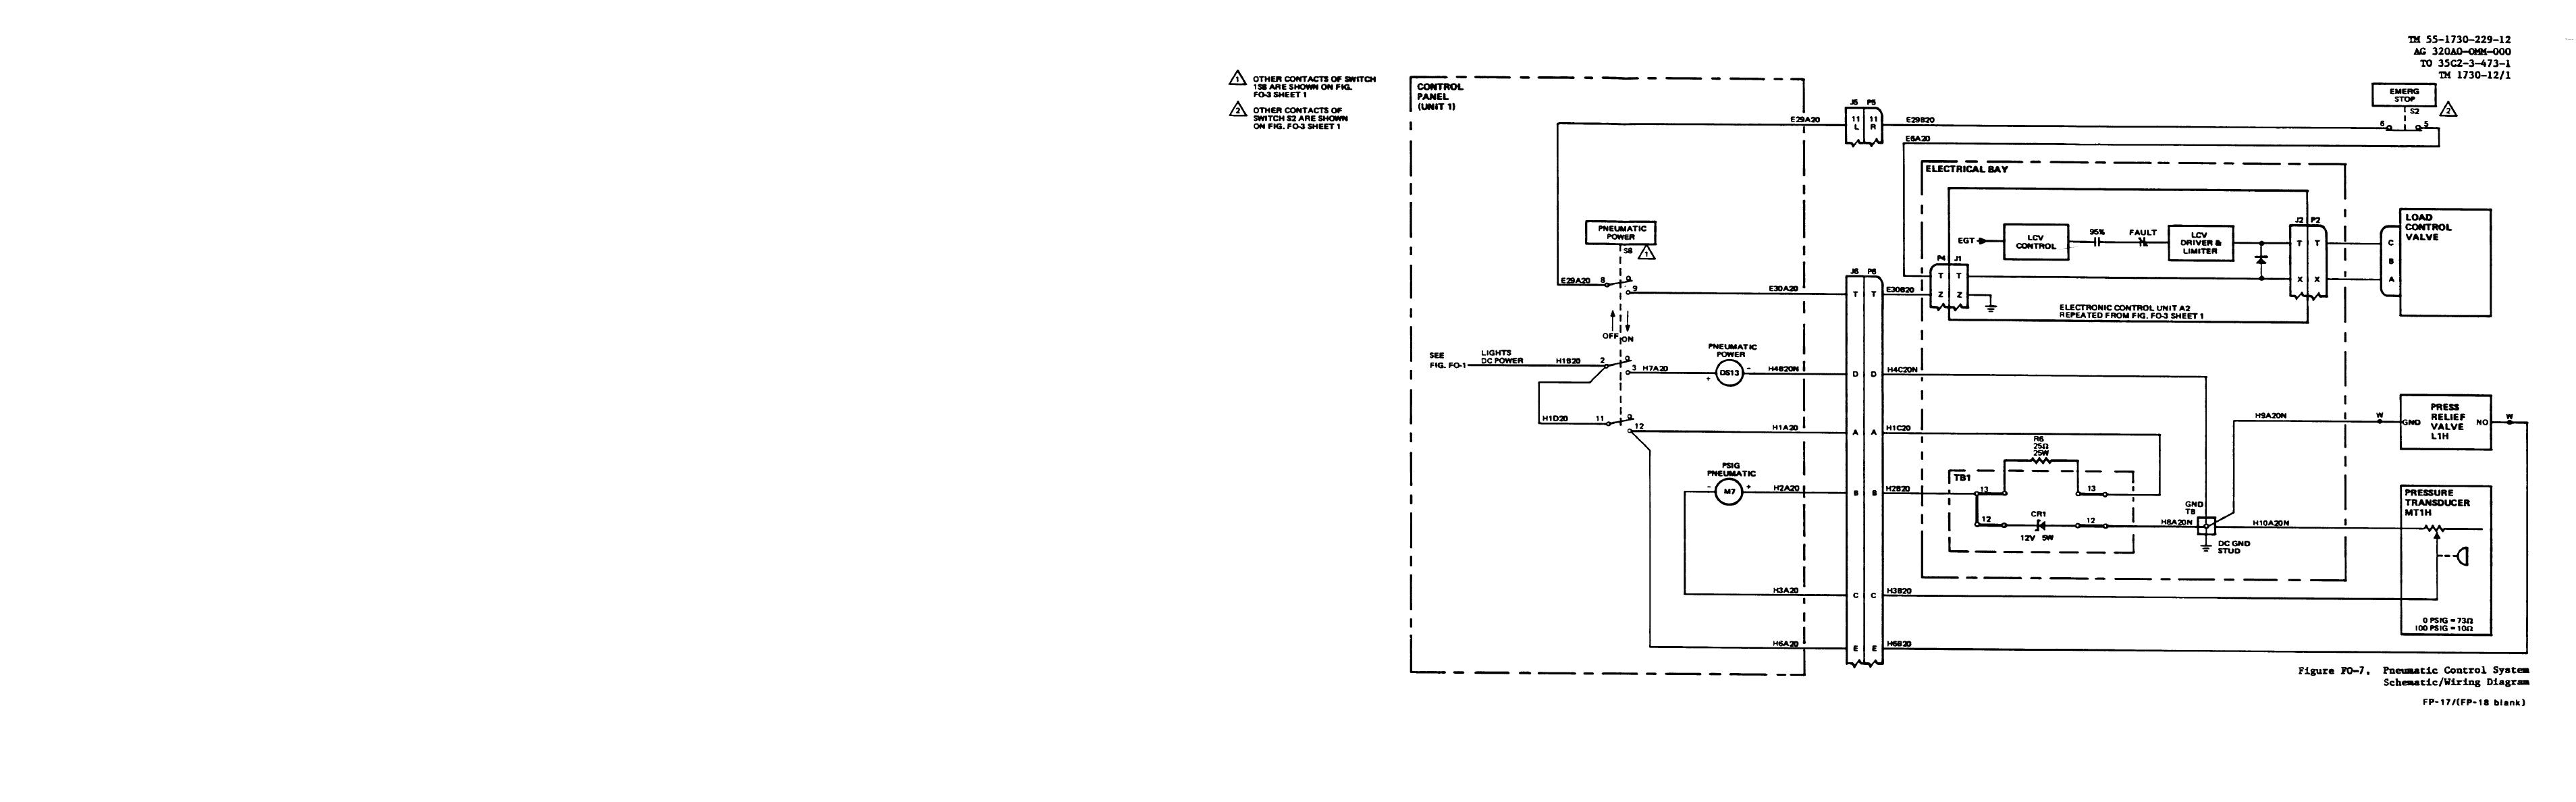 Figure Fo 7 Pneumatic Control System Schematic Wiring Diagram 120 Tm 55 1730 229 12 Power Unit Aviation Multi Output Gted Electrical Hydraulic Agpu Wheel Mounted Self Propelled Towable Manual Page Navigation